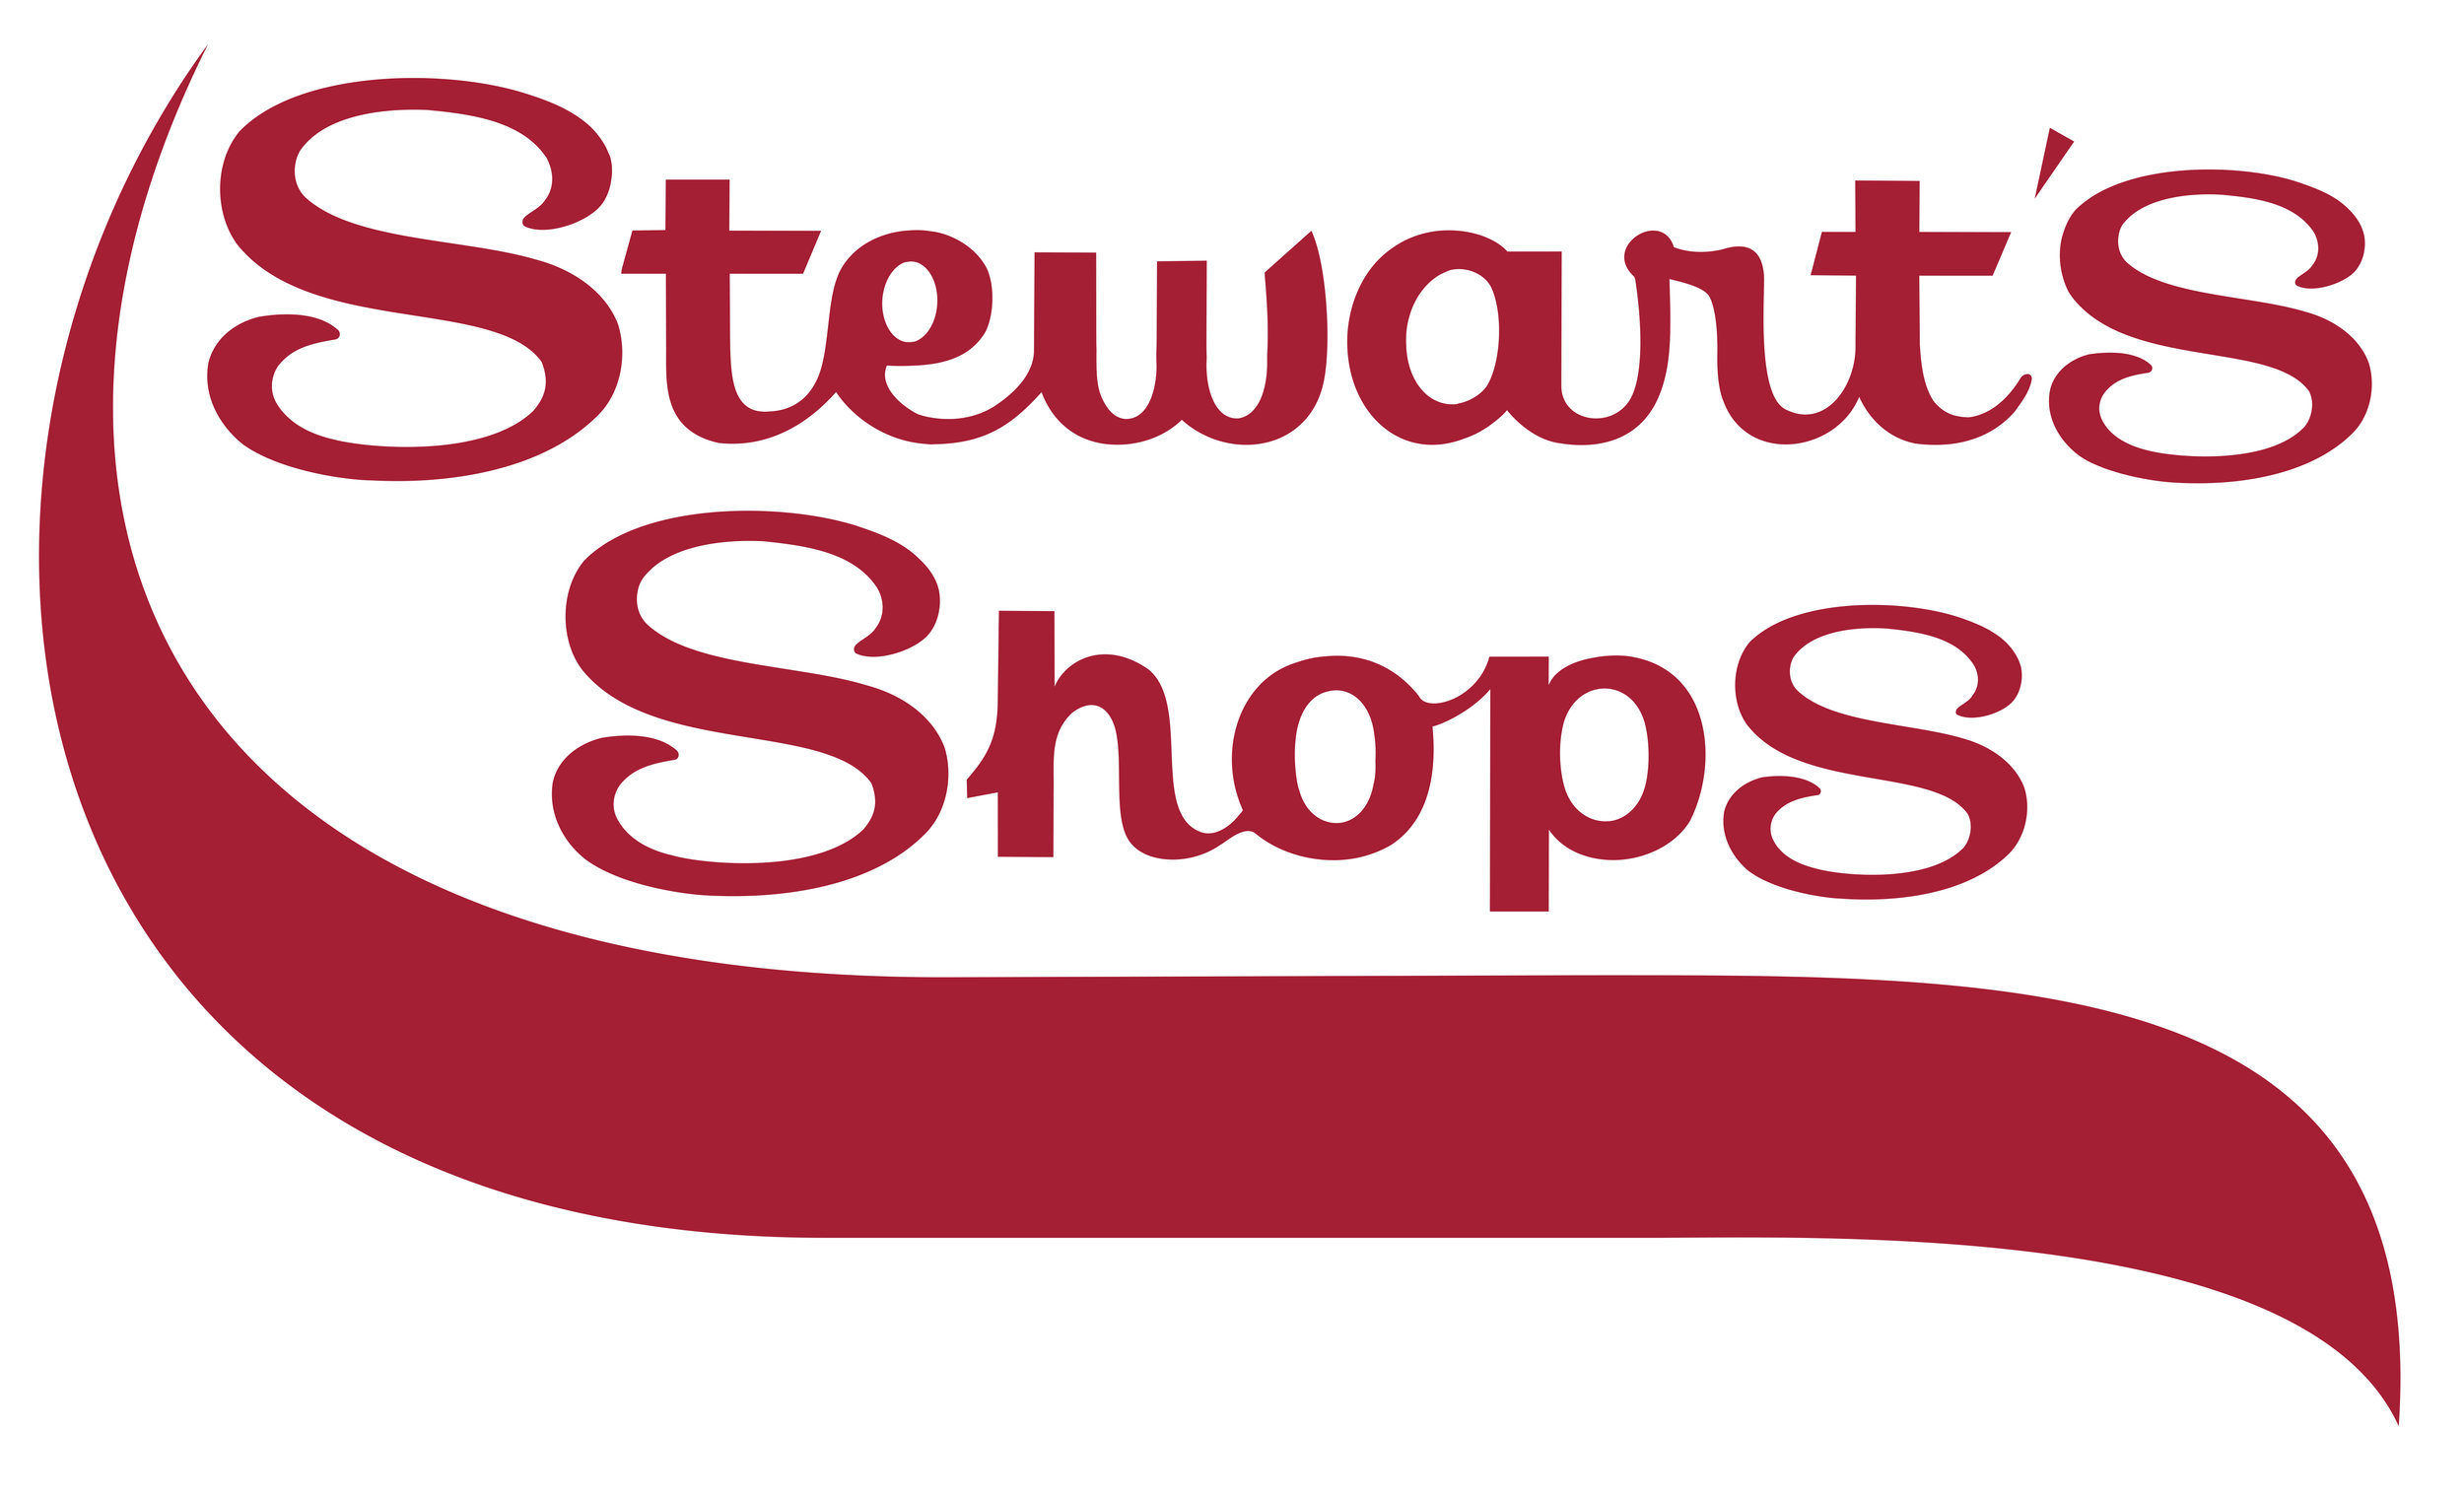 HI-RES Stewarts Shops Wave logo color.jpg